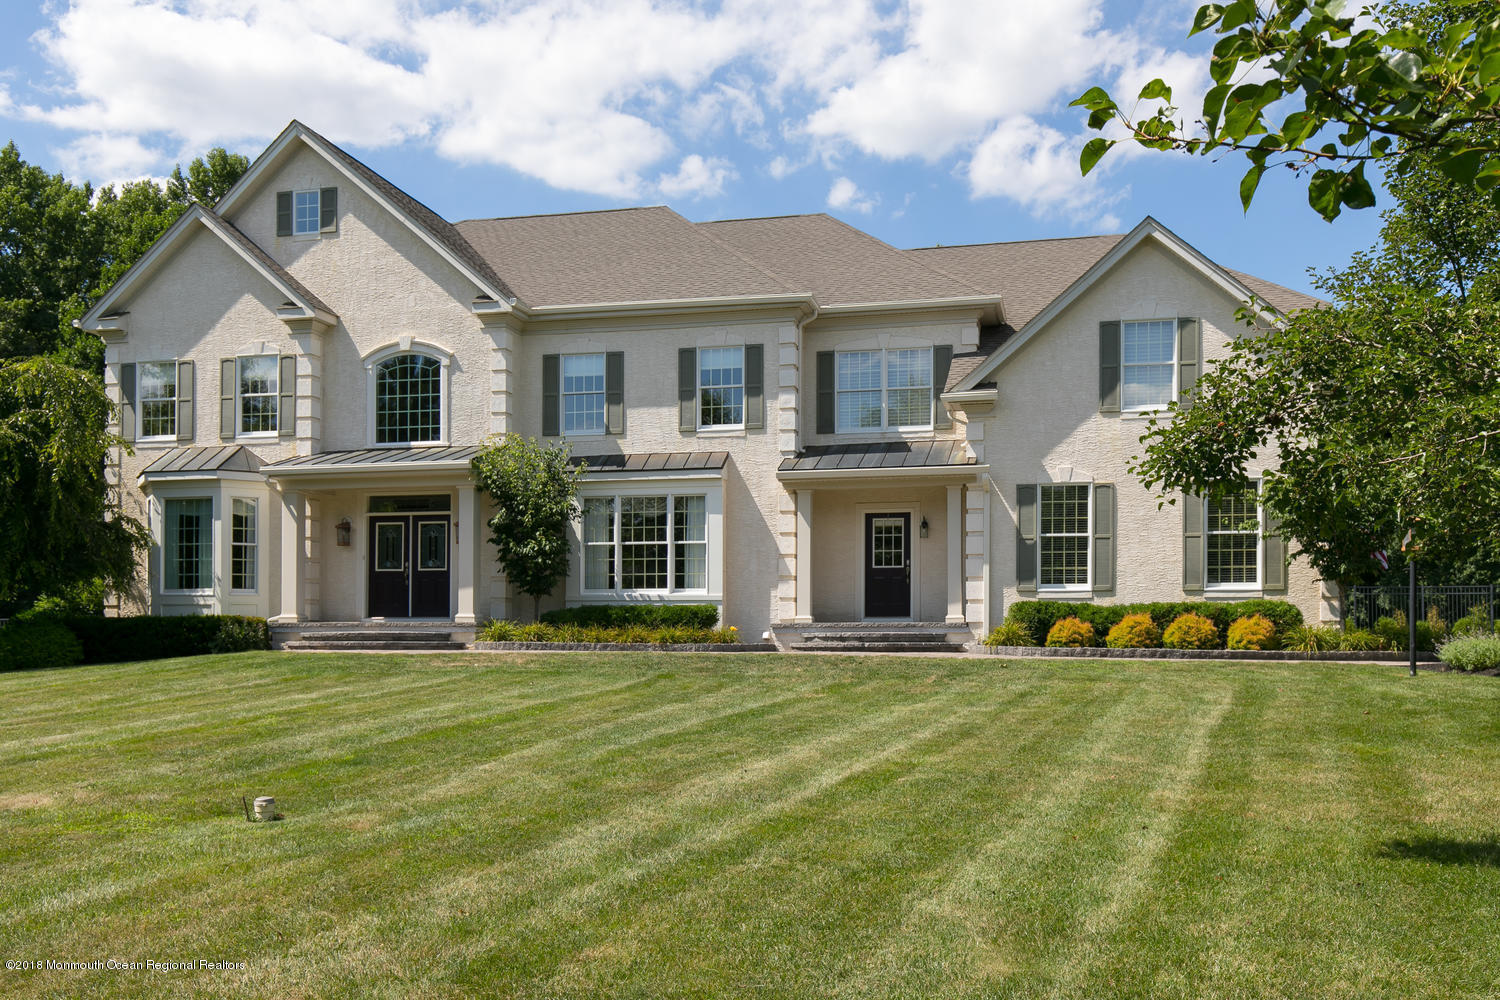 14 Sleepy Hollow Court Cream Ridge NJ 08514